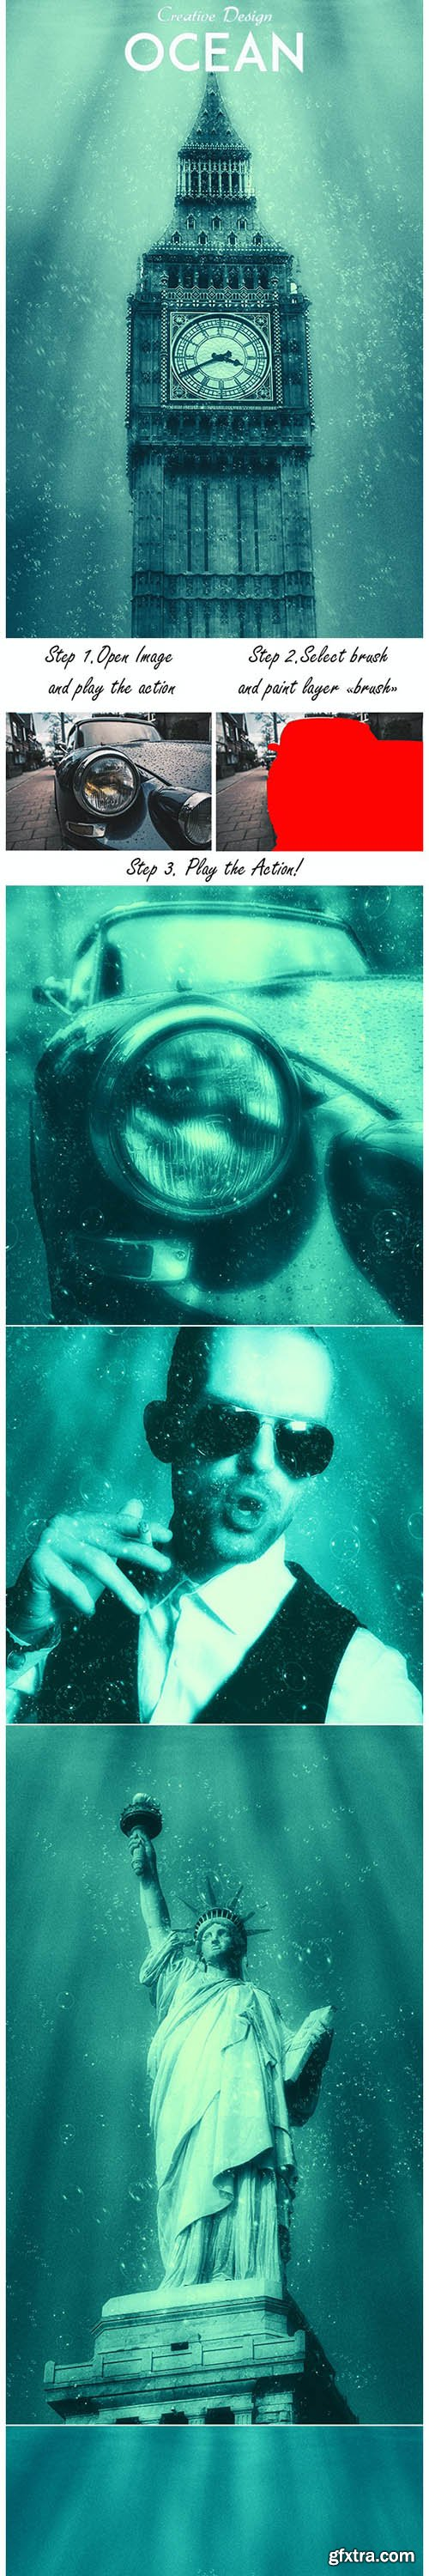 GraphicRiver - Ocean Photoshop Action 27925111